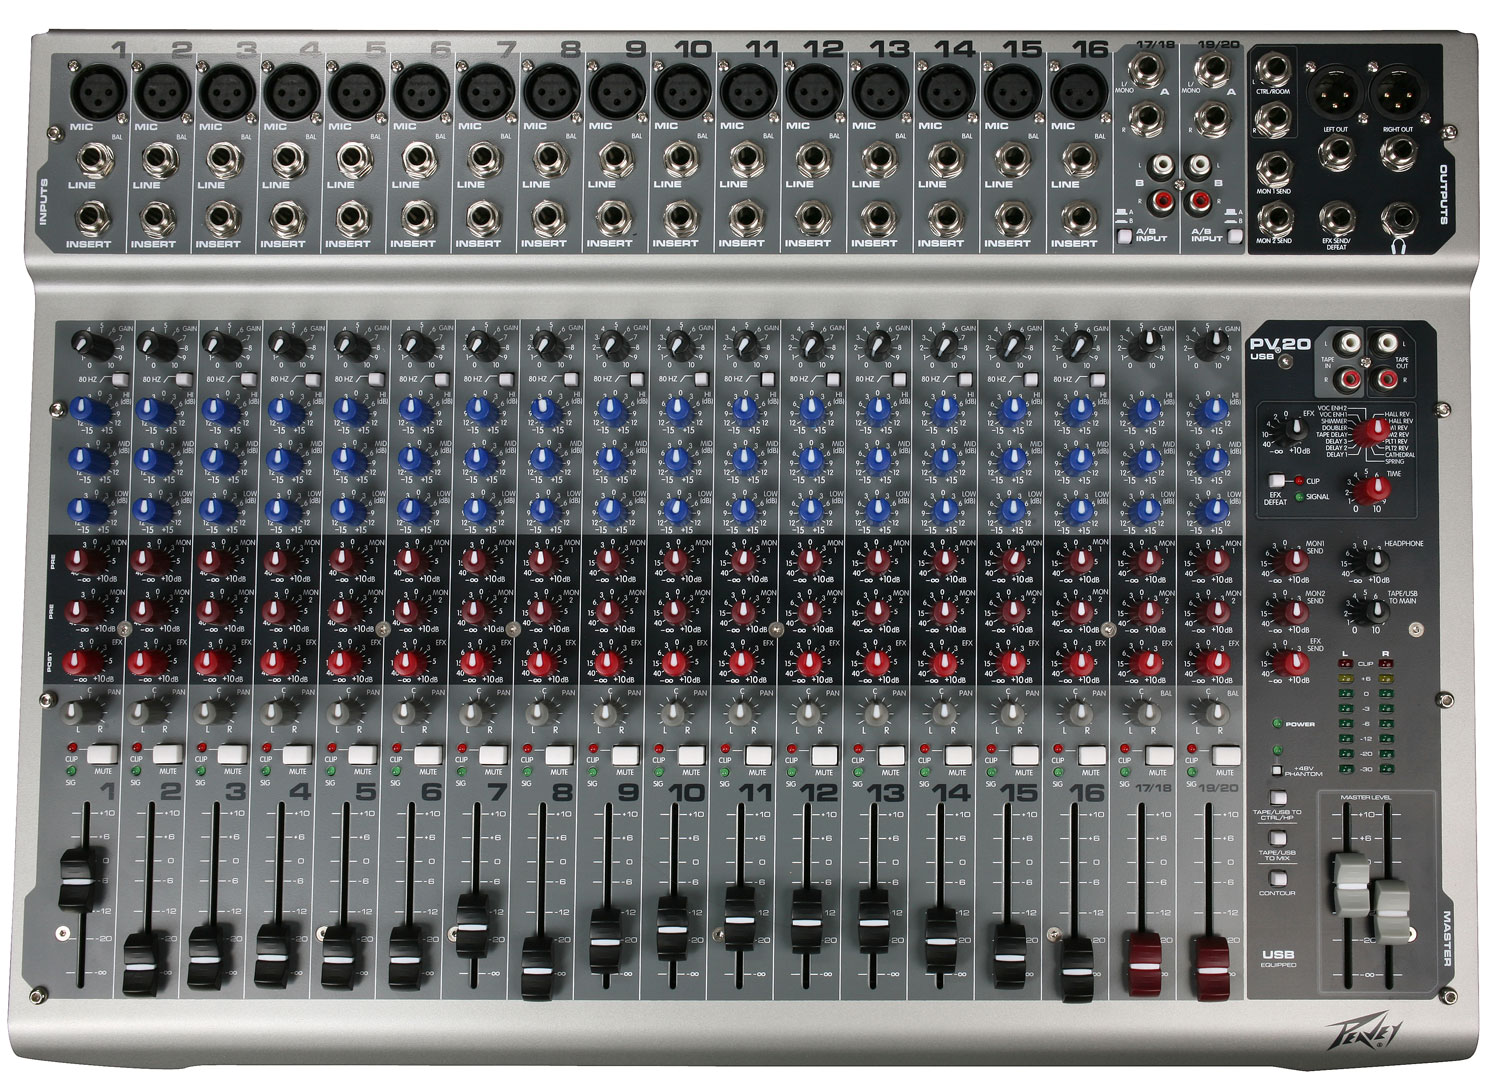 peavey pv 20 usb mixer with built in dsp effects multiple reverbs 513020 pev13 513020. Black Bedroom Furniture Sets. Home Design Ideas